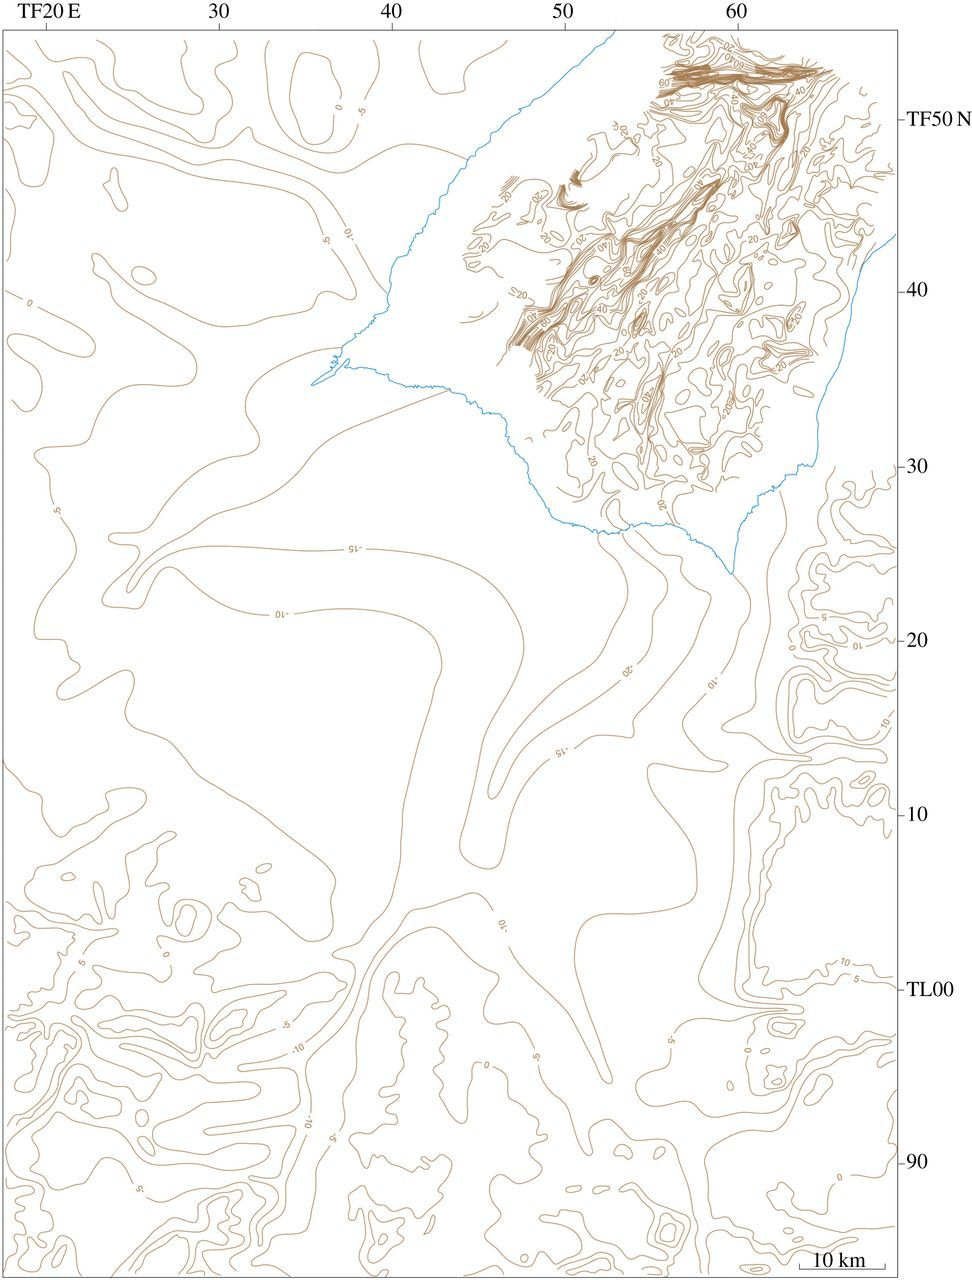 Pleistocene glaciation of Fenland, England, and its implications for